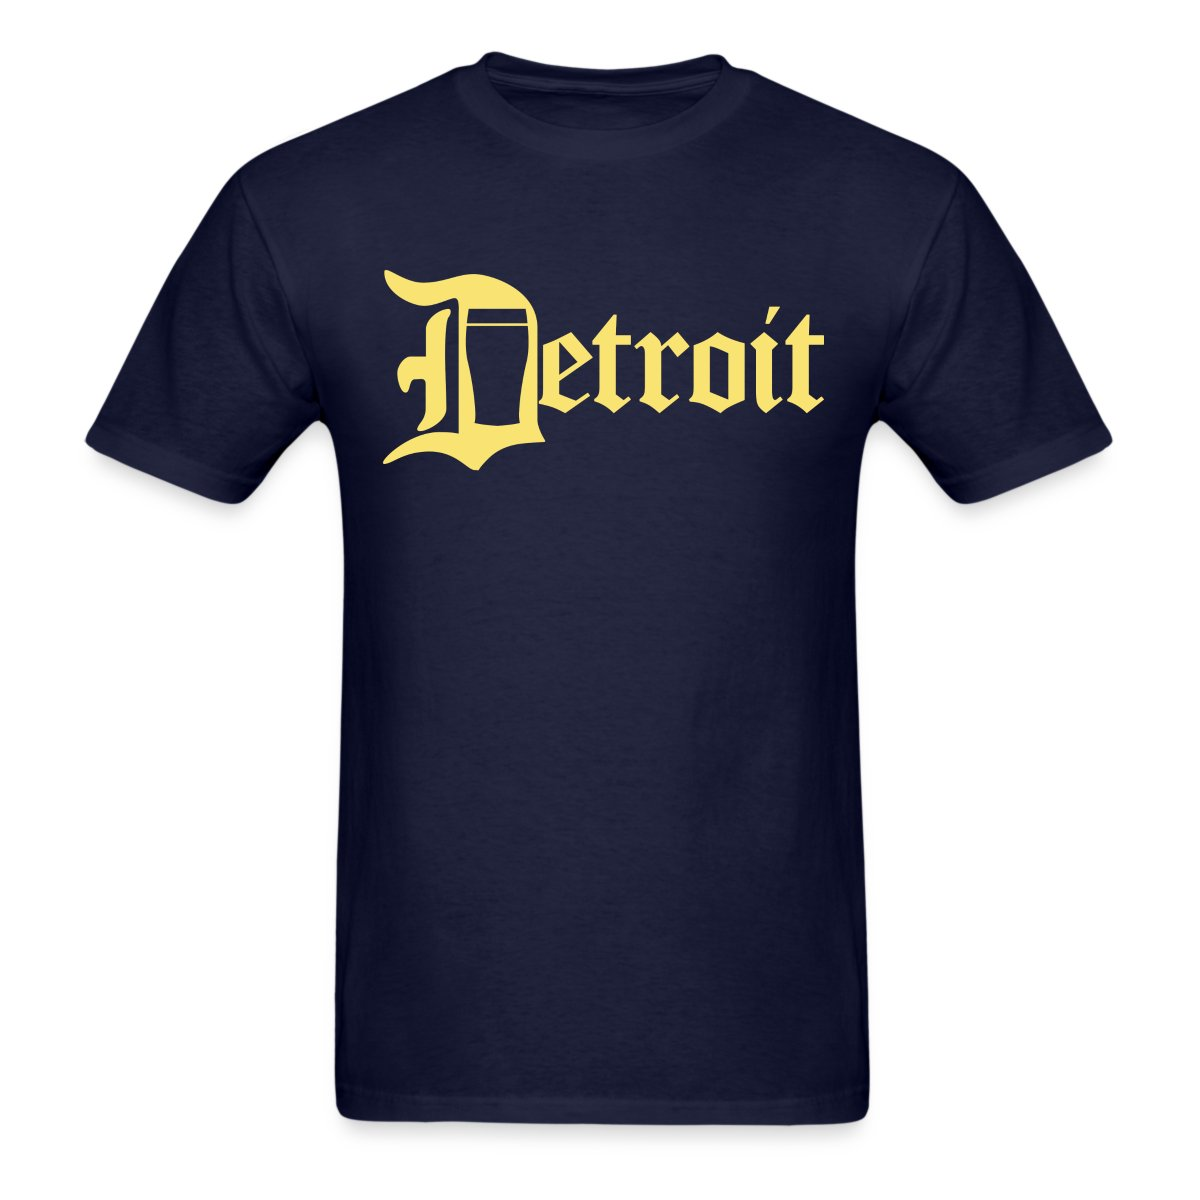 Detroit Pint City Beer Clothing Apparel T Shirt Mens T Shirt